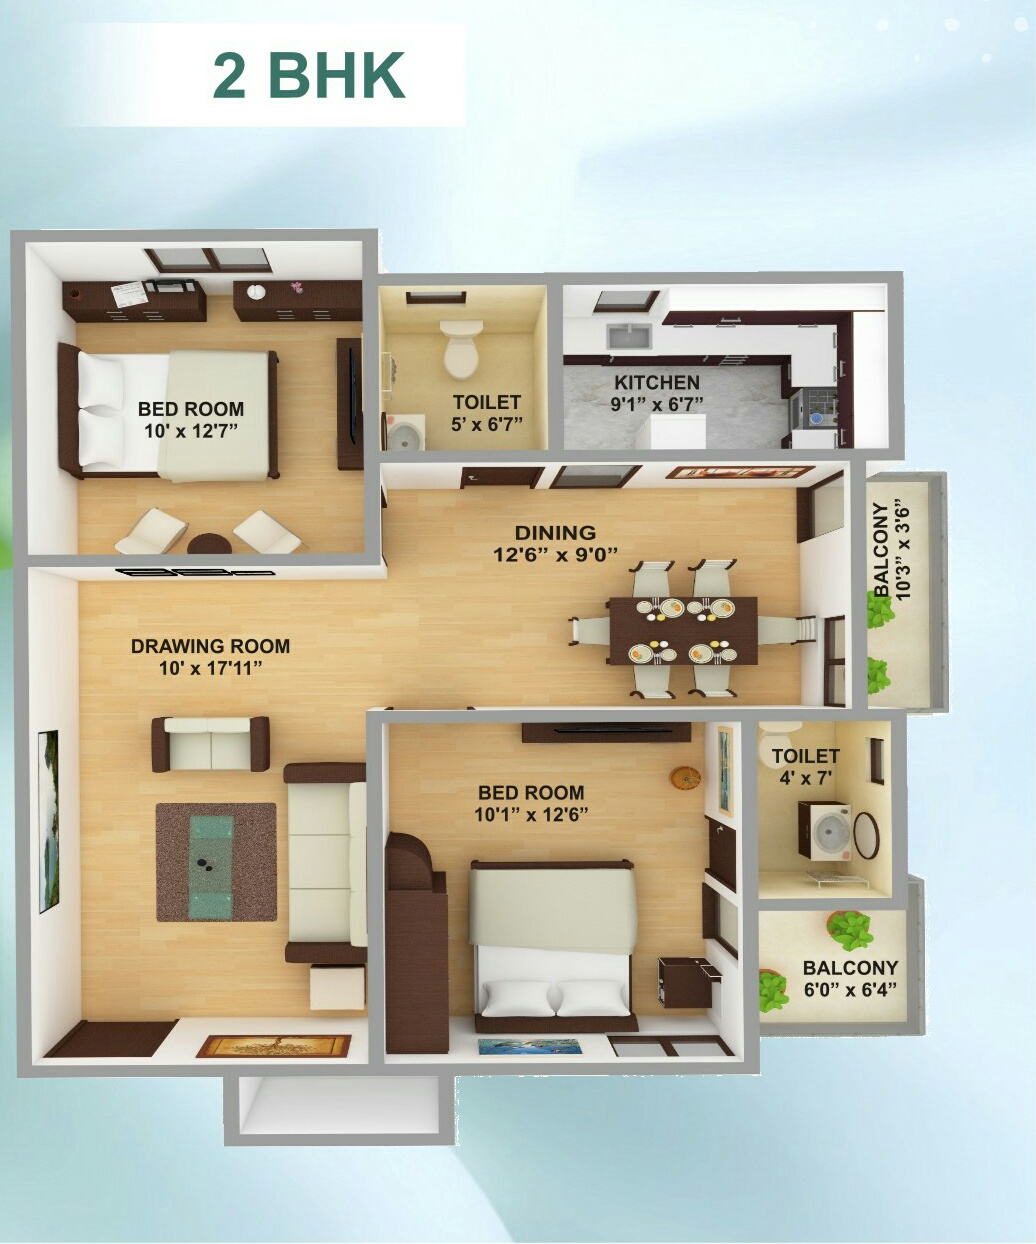 2 bhk flat for sale in Kamothe